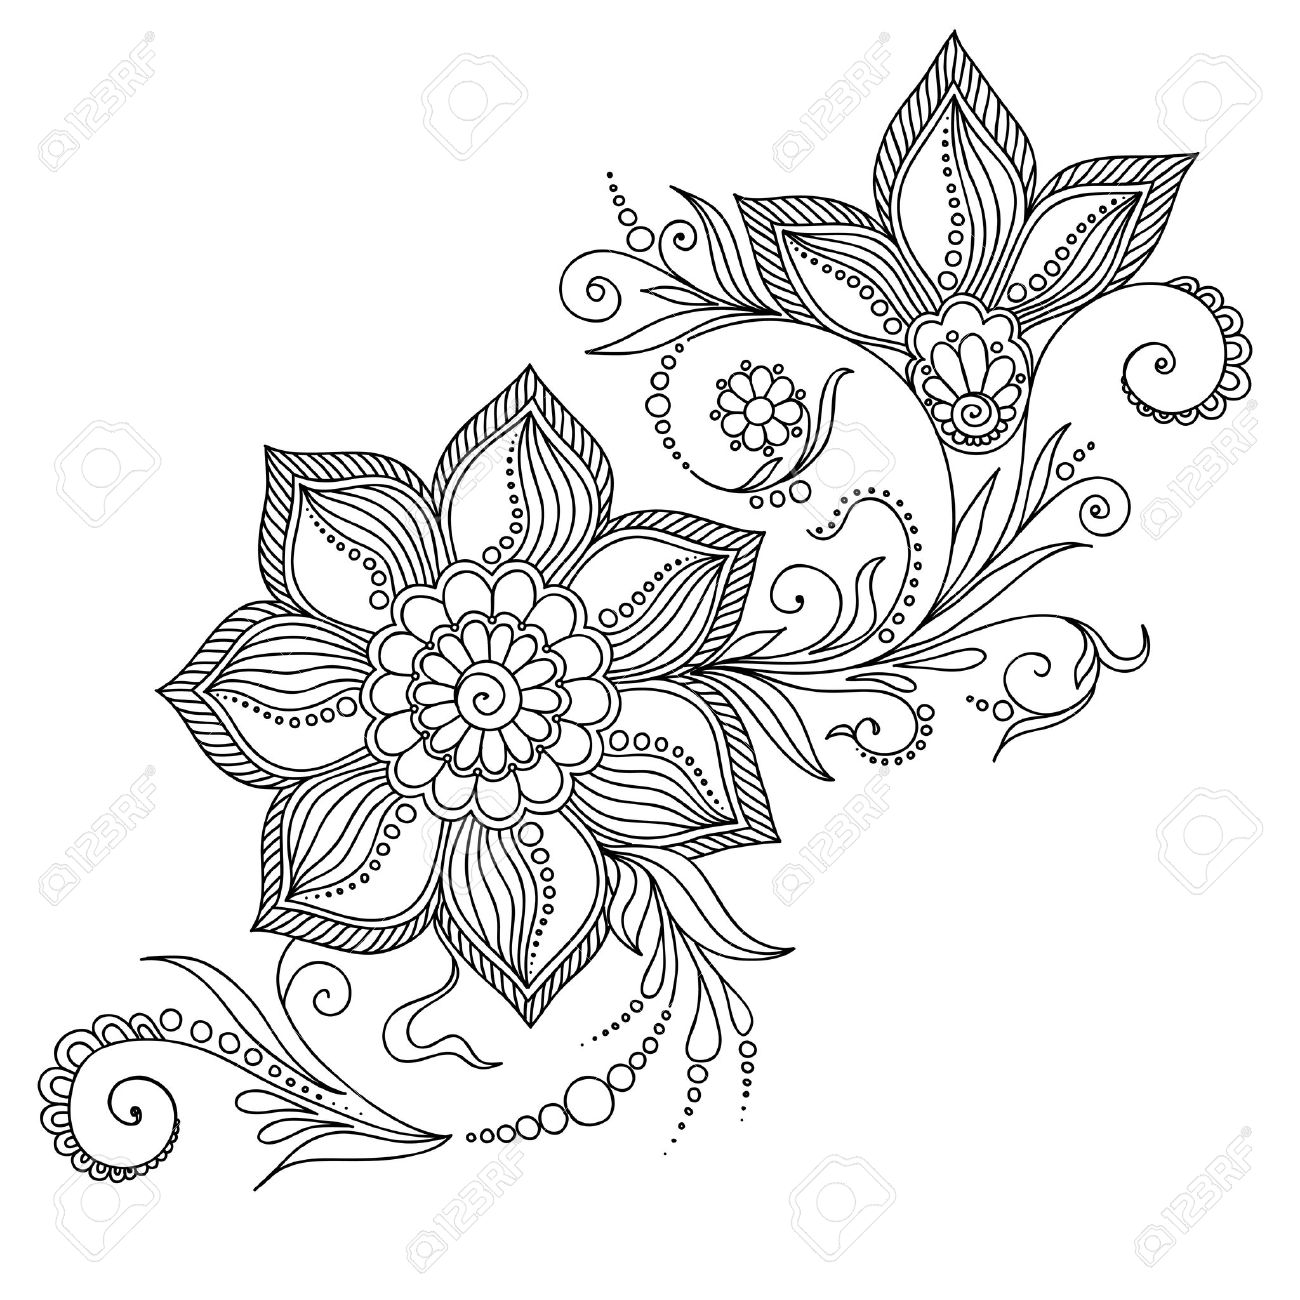 Pattern for coloring book. Coloring book pages for kids and adults.Vector abstract floral elements in indian style. Henna Mehndi Tattoo Style Doodles - 47645769